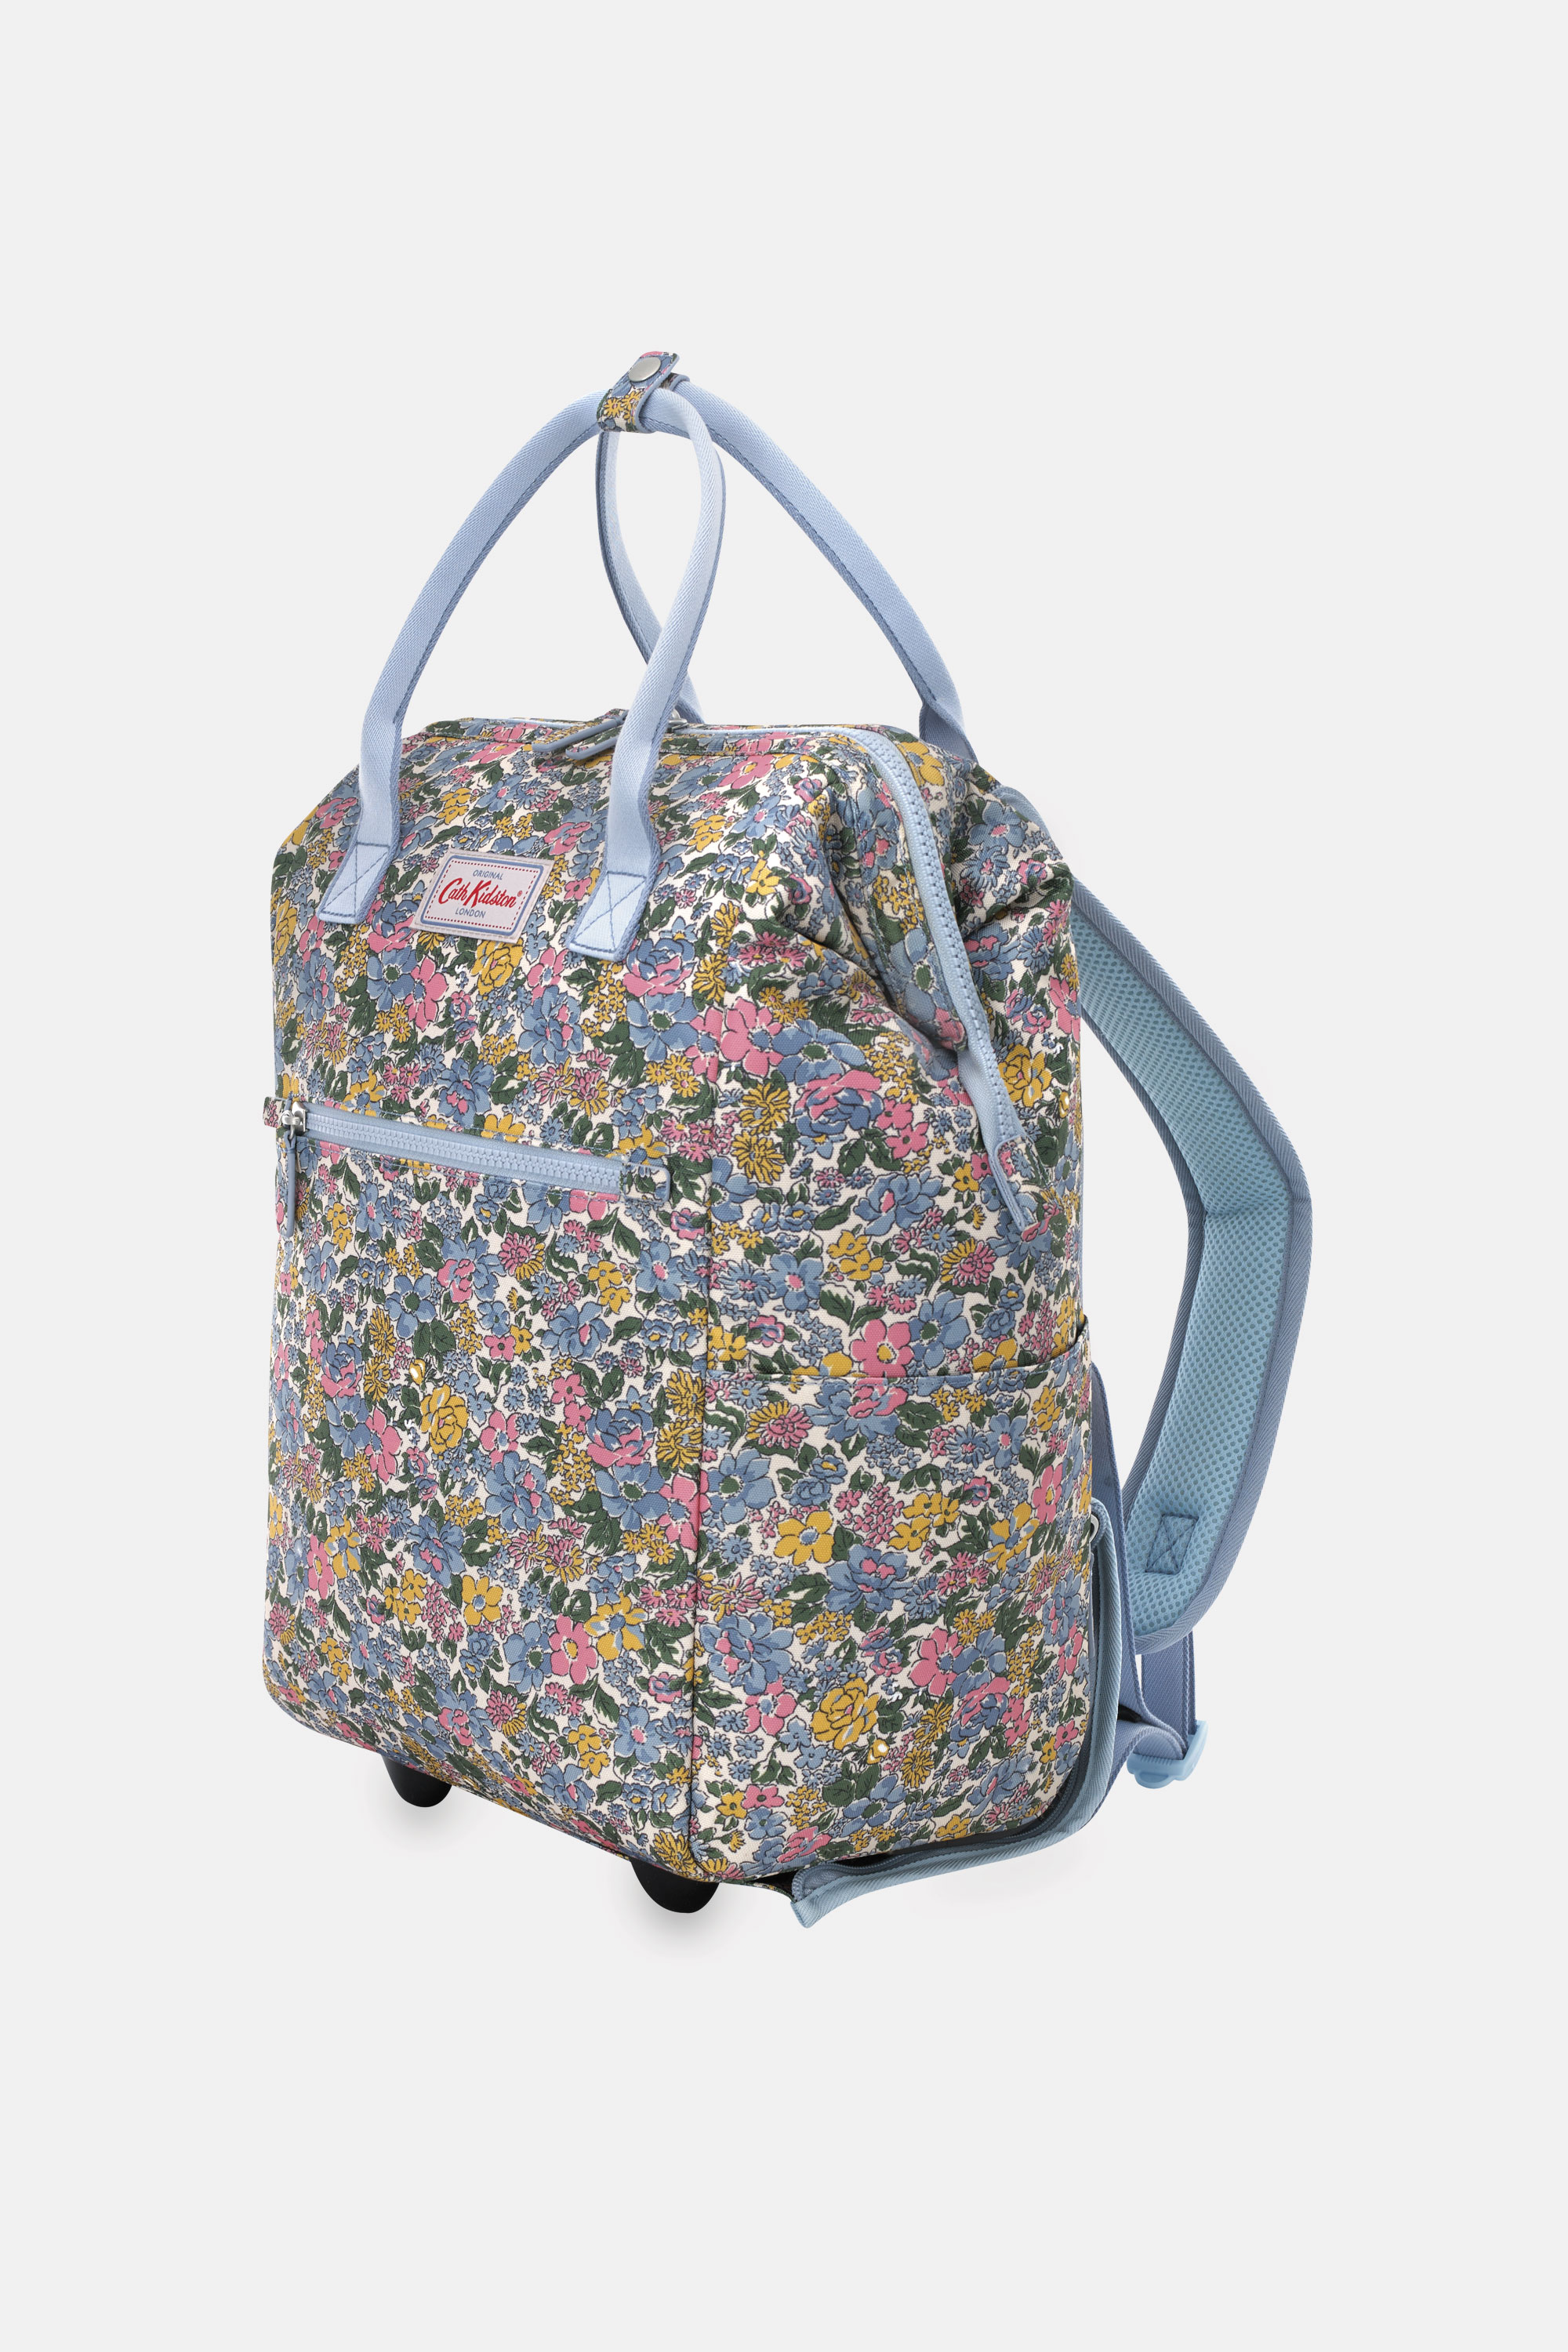 Cath Kidston Vale Floral Wheeled Backpack in Warm Cream